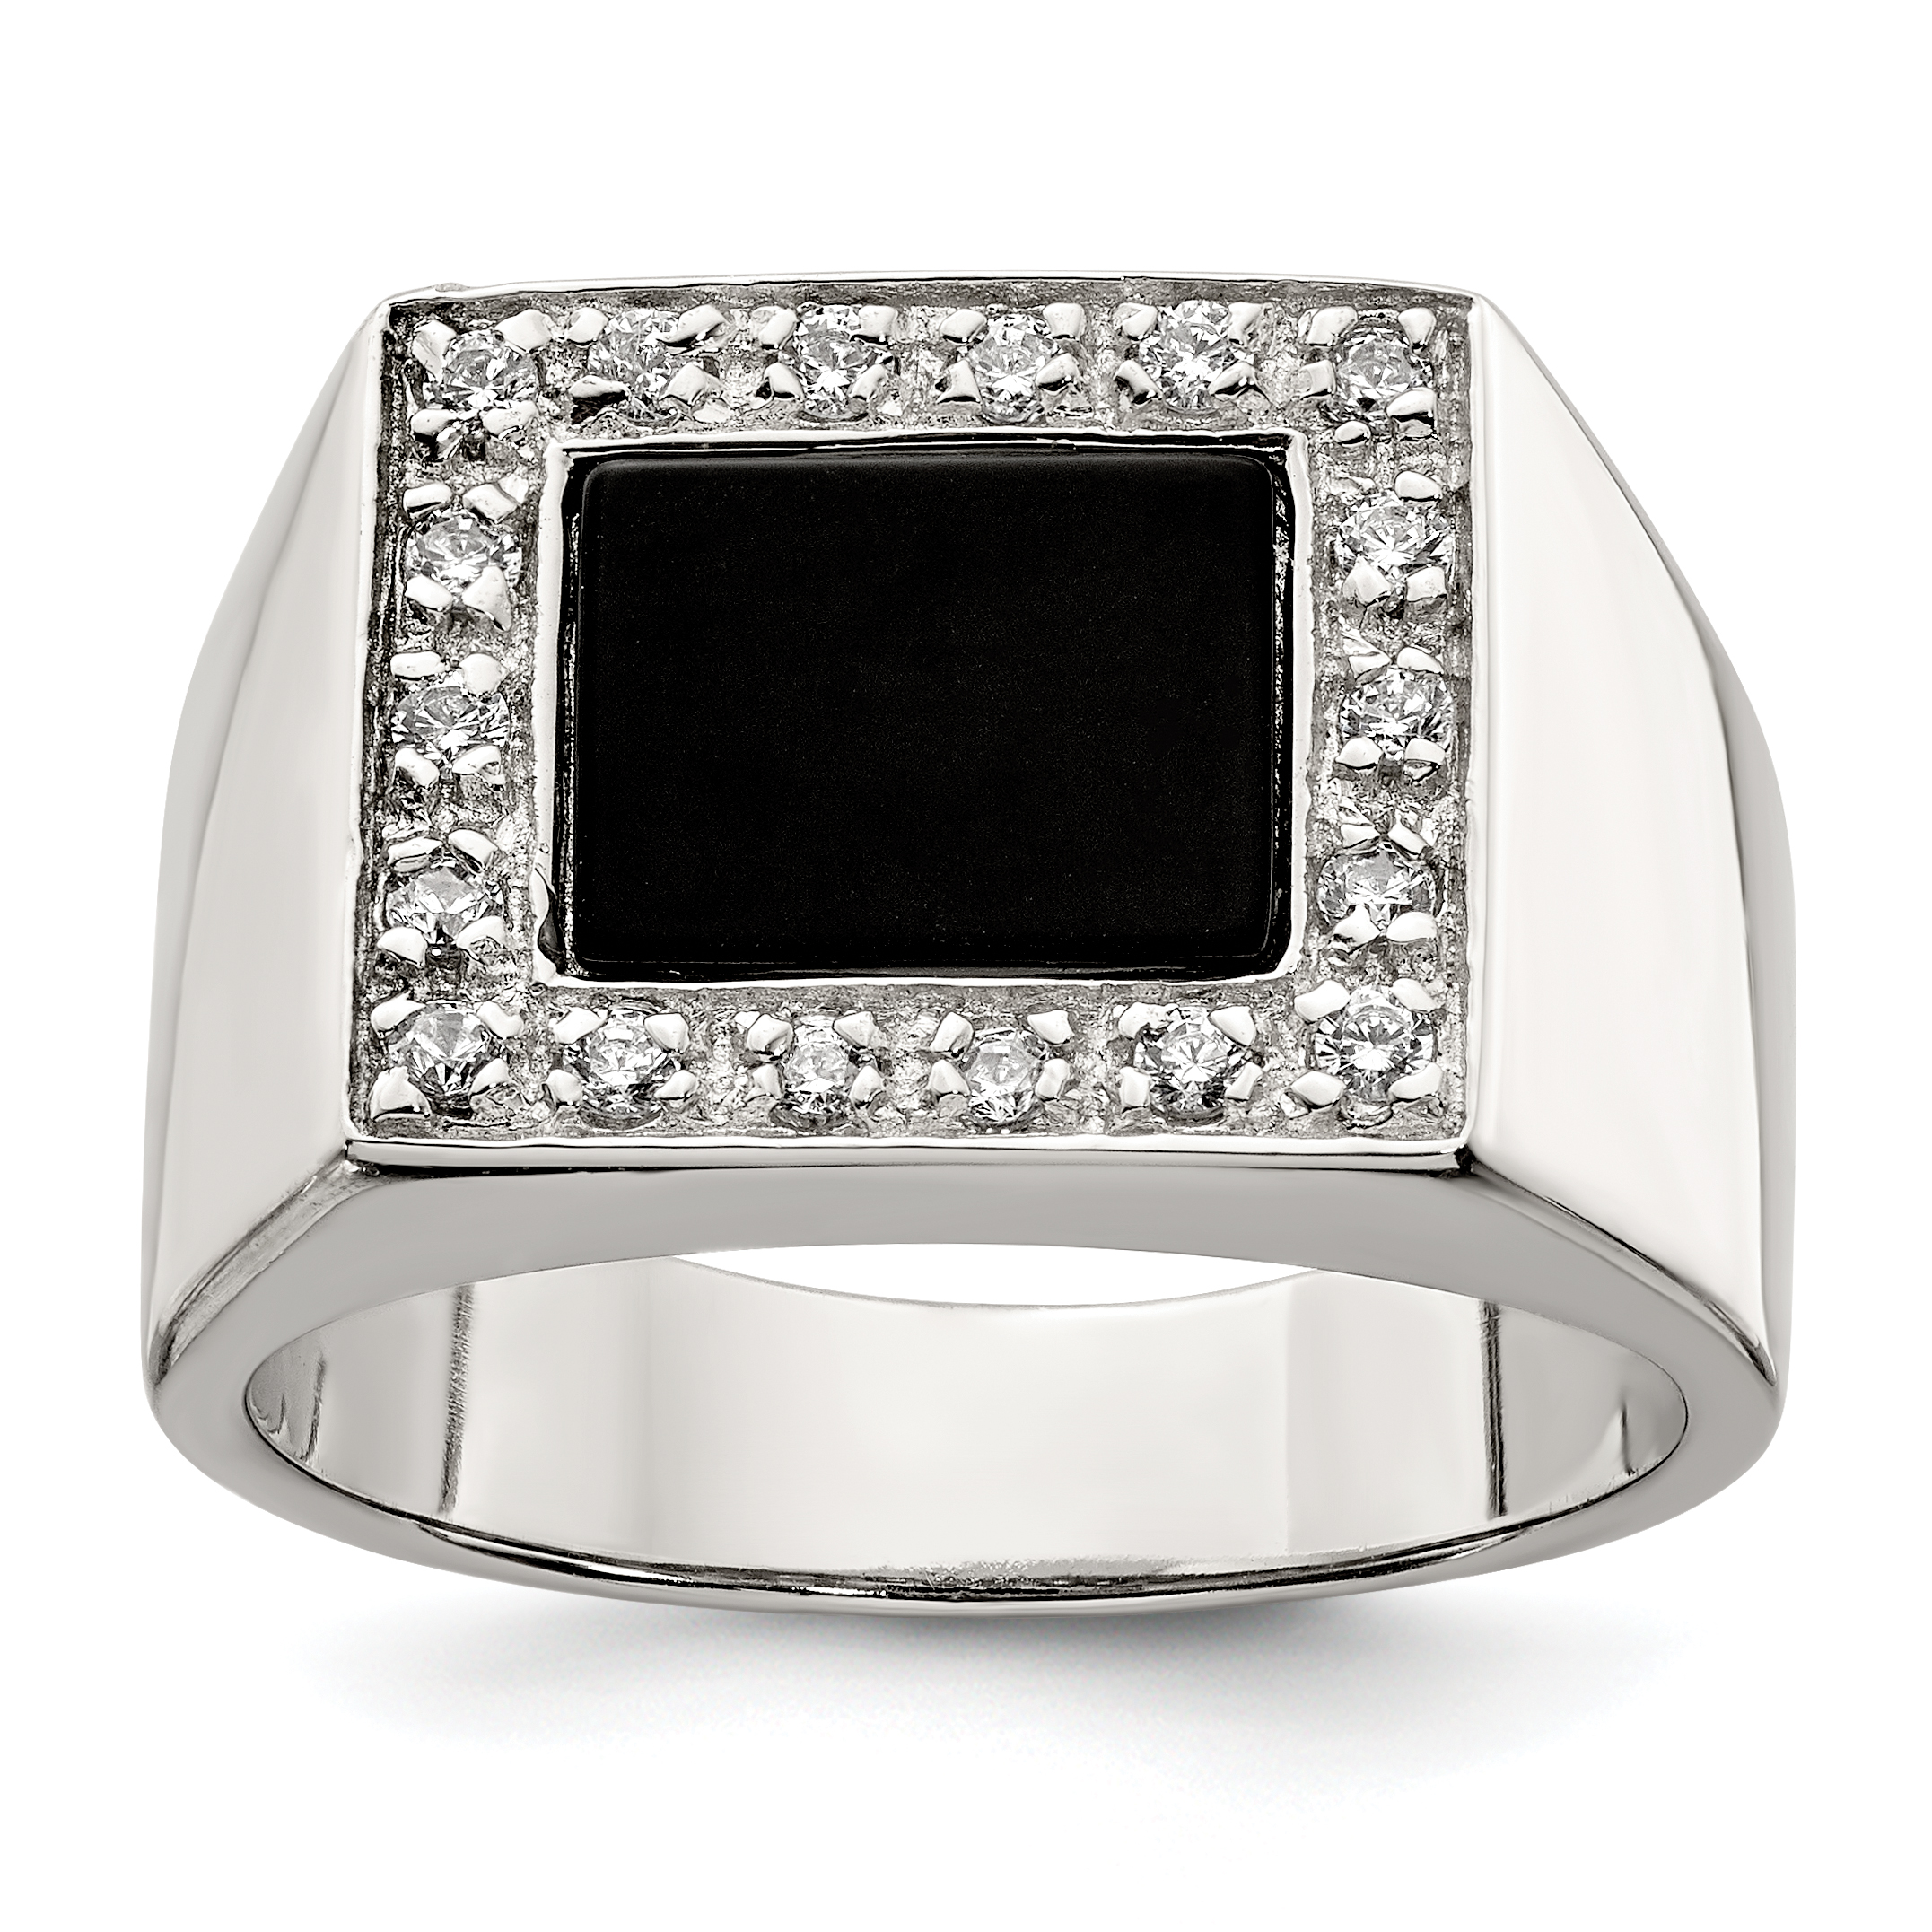 925 Sterling Silver Mens Cubic Zirconia Cz Black Onyx Band Ring Size 9.00 Man Fine Jewelry Gift For Dad Mens For Him - image 2 de 2